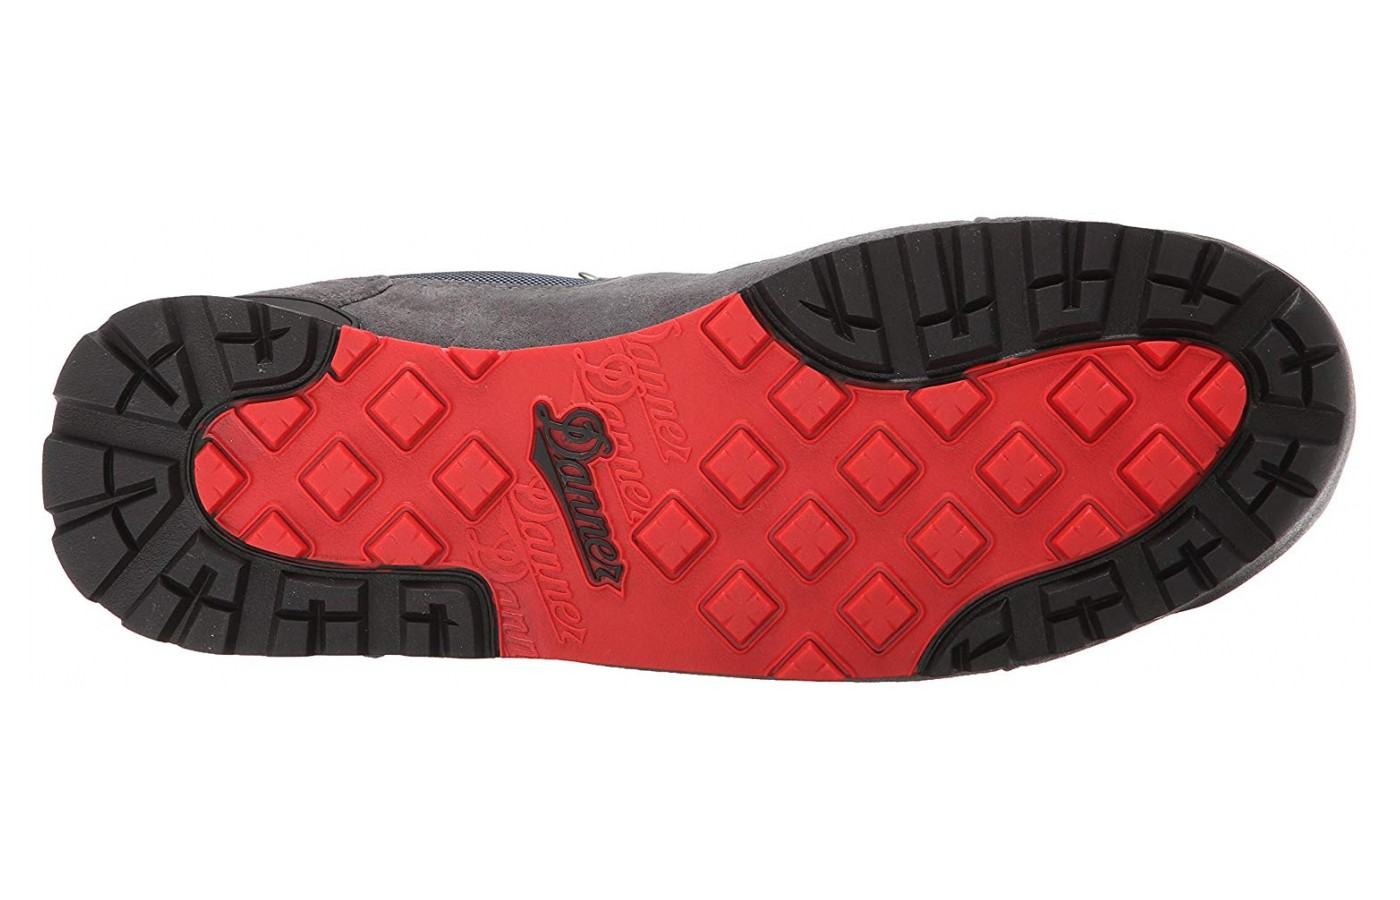 The bottom is made of a retro Danner waffle outsole designed to adapt to a variety of terrains.